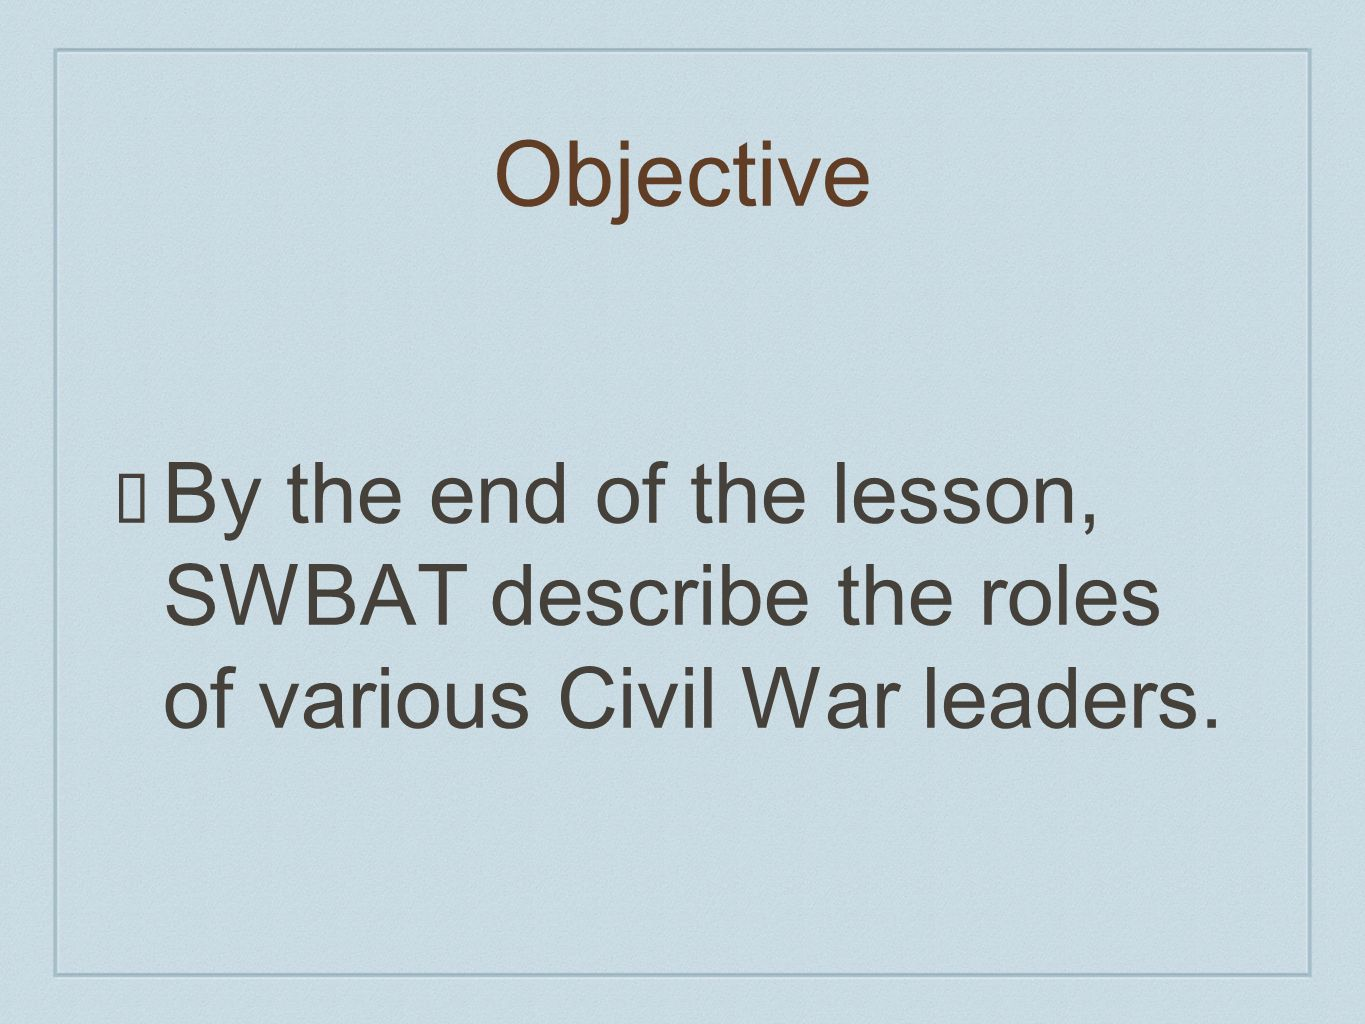 Objective By the end of the lesson, SWBAT describe the roles of various Civil War leaders.